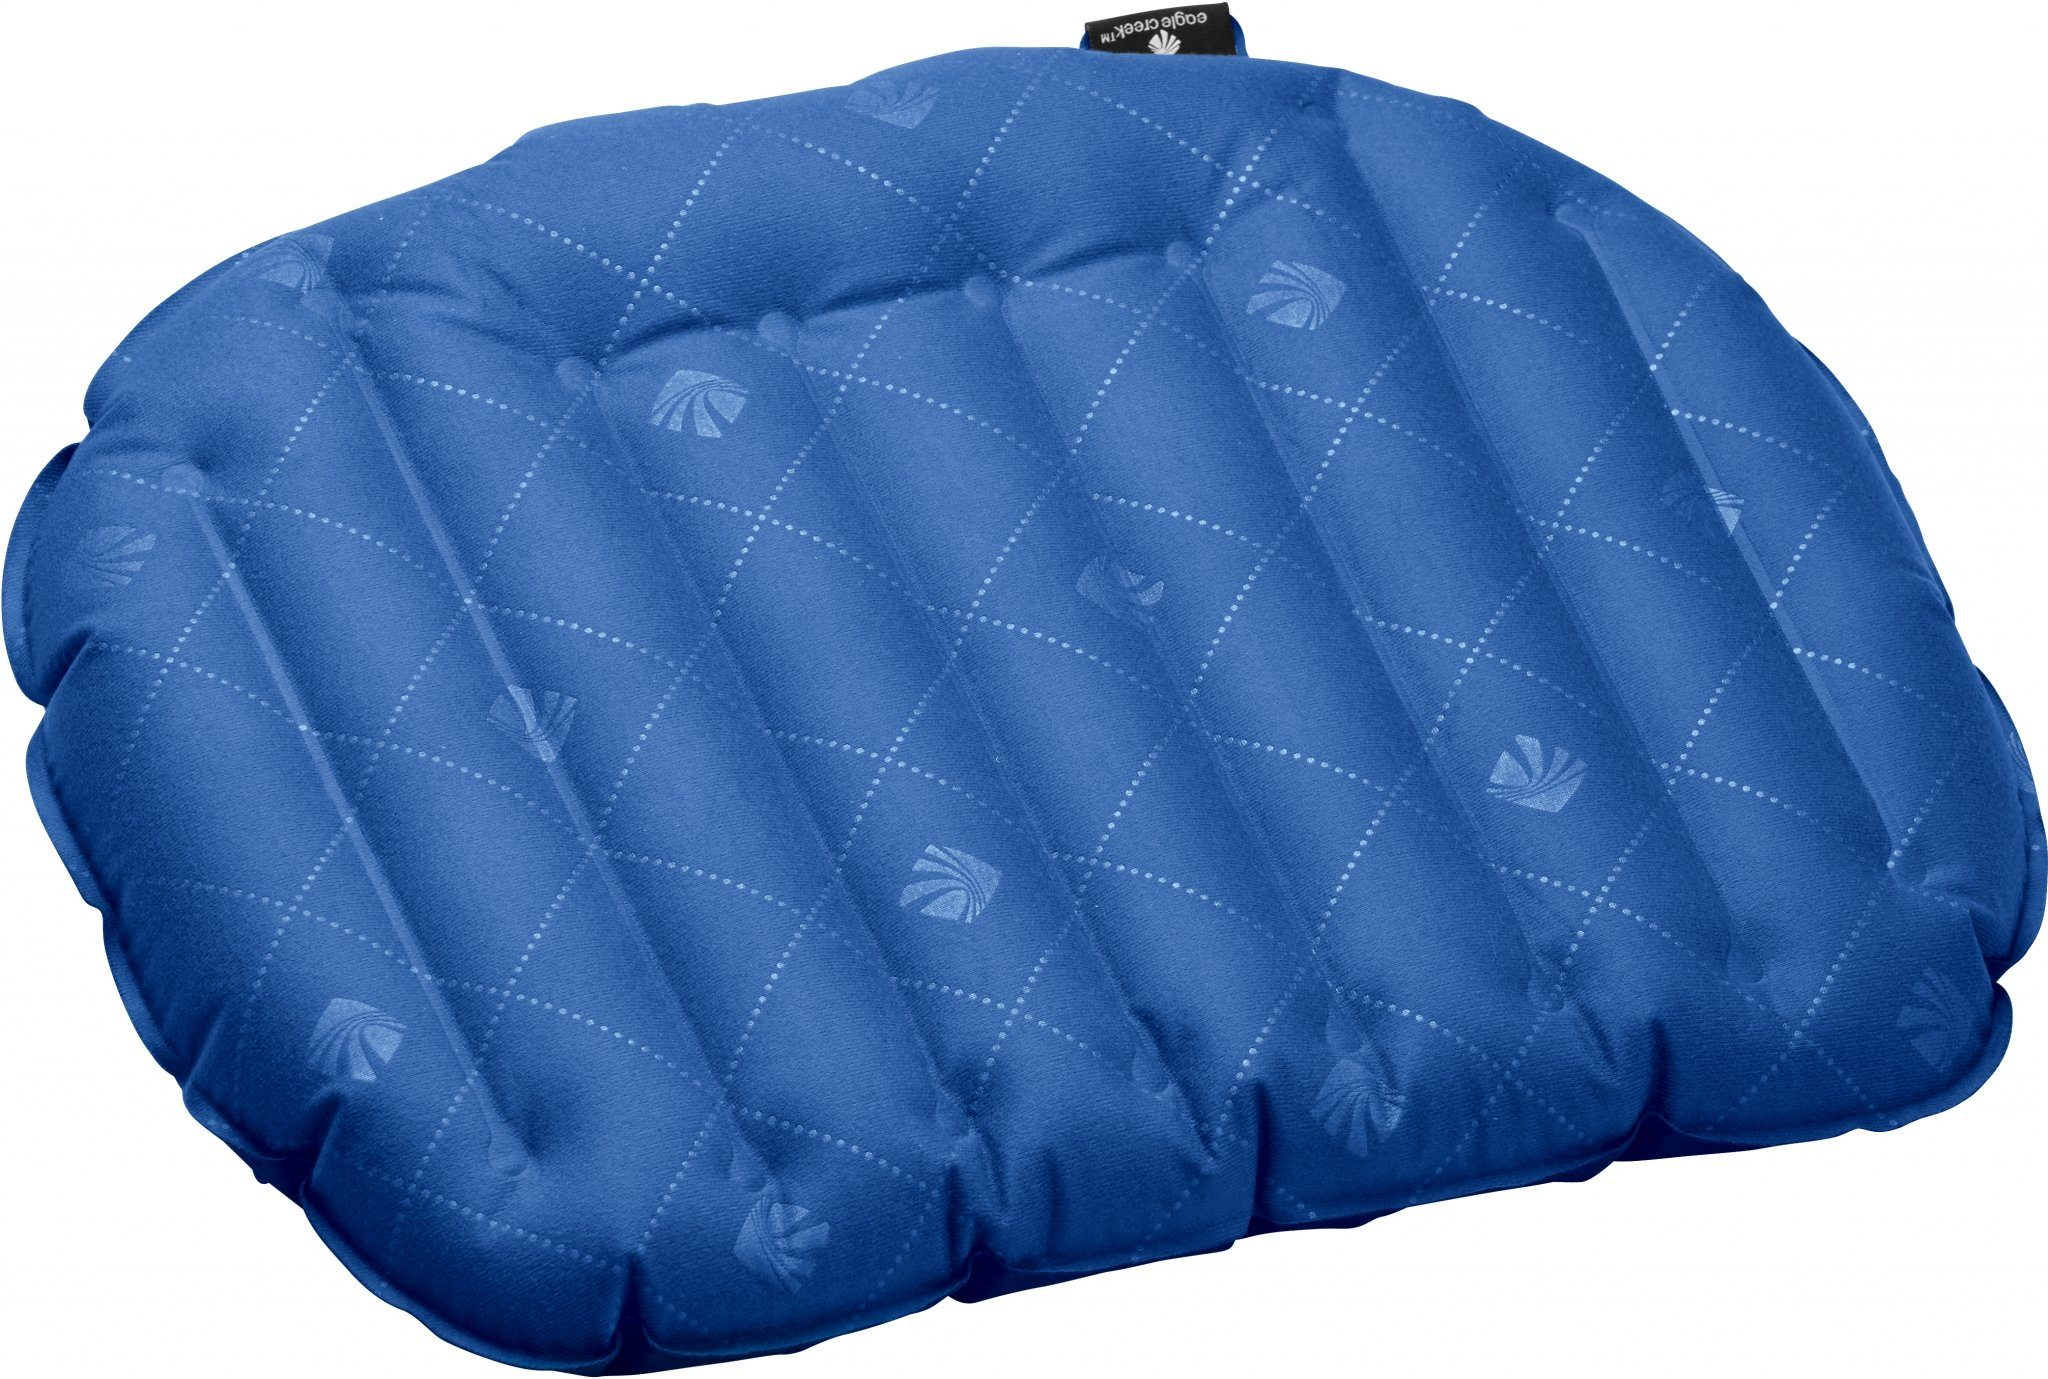 Eagle Creek Reisekissen »Fast Inflate Travel Seat Cushion«